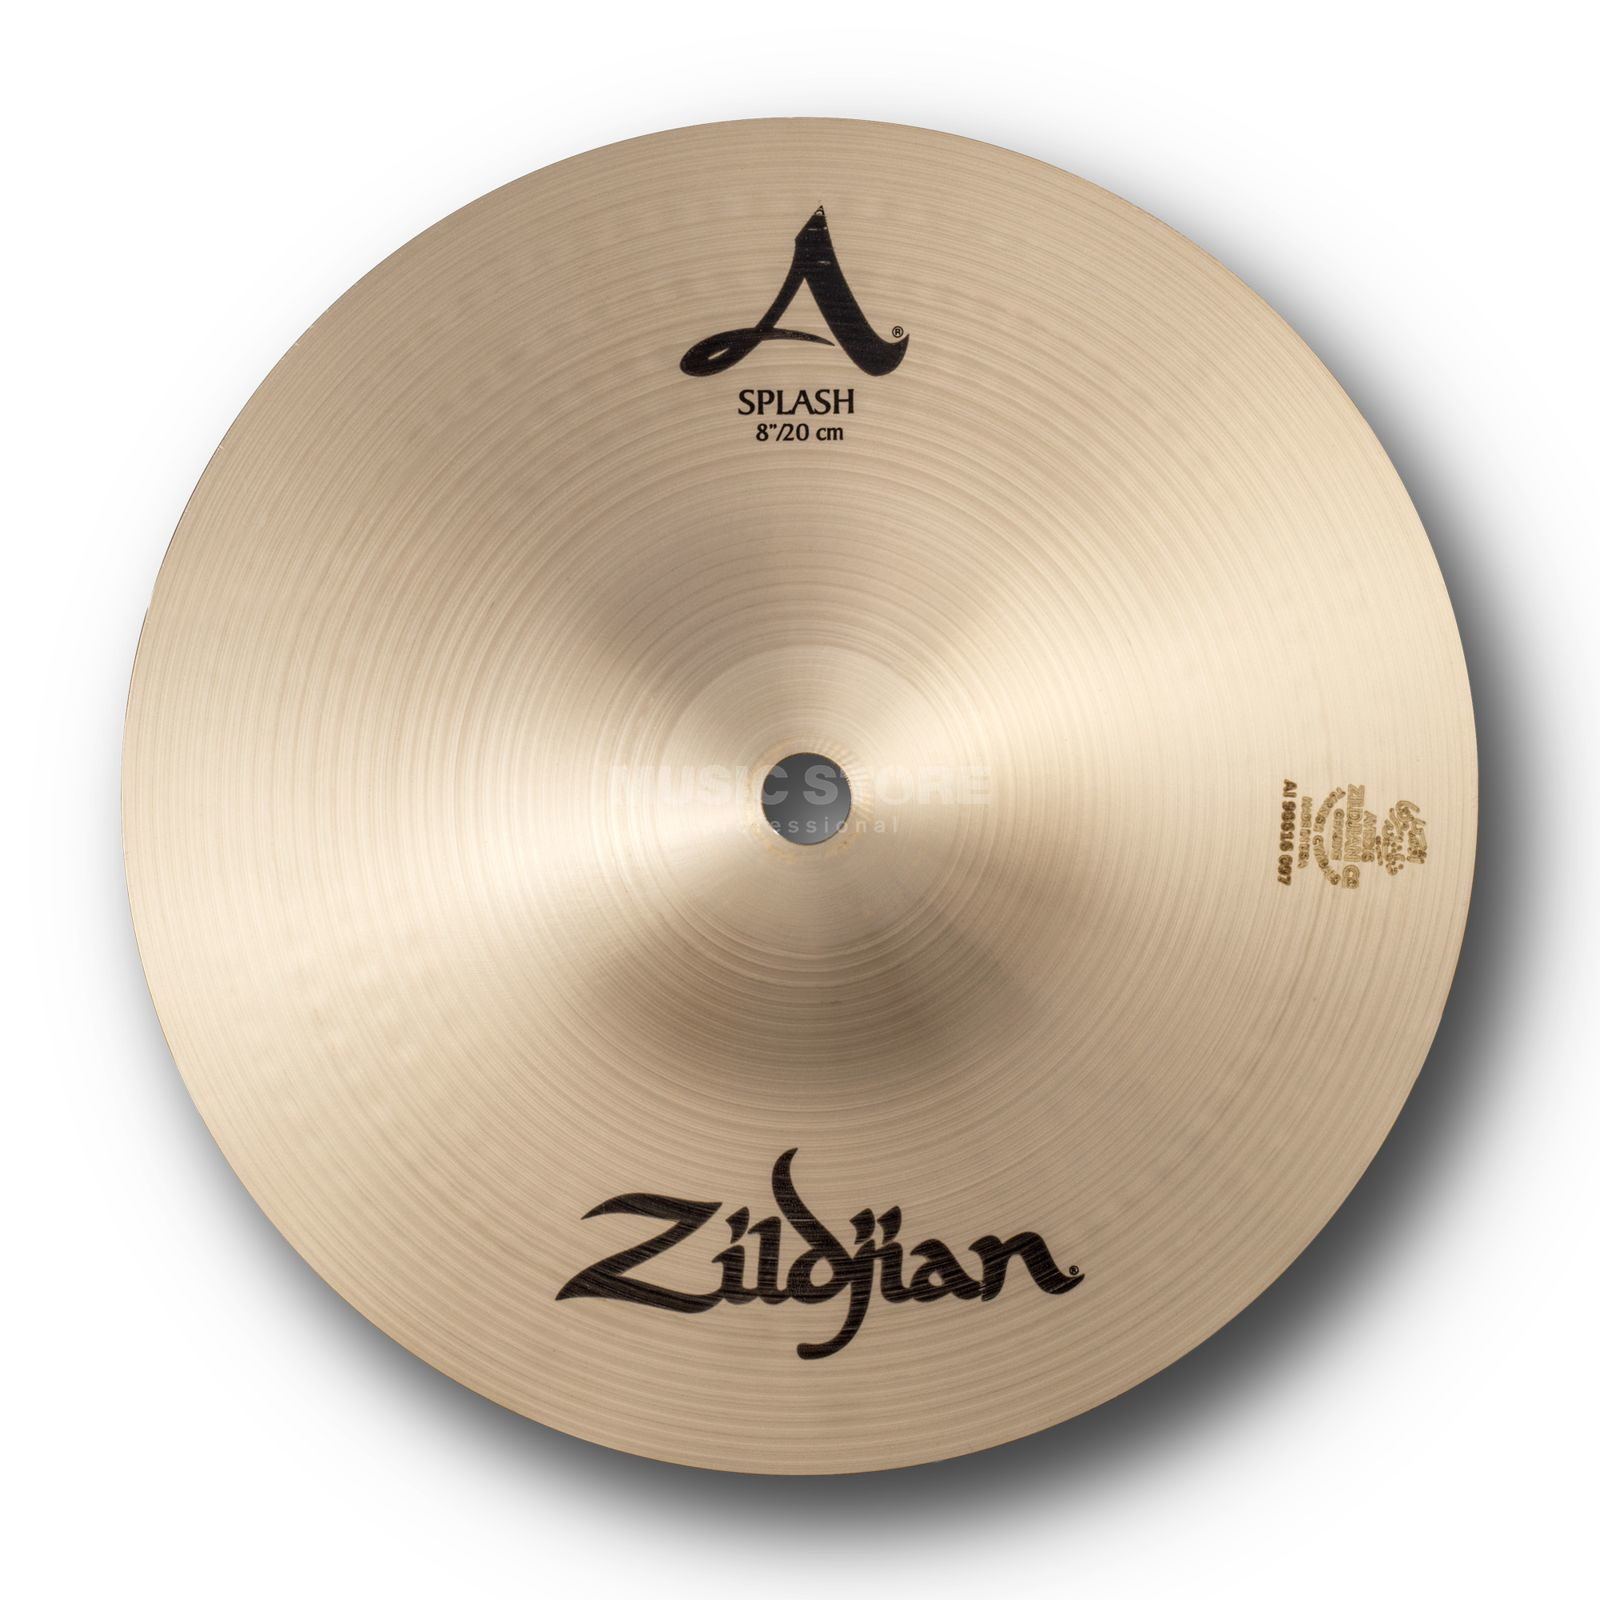 "Zildjian A' Zildjian Splash 8"", Traditional Finish Produktbillede"